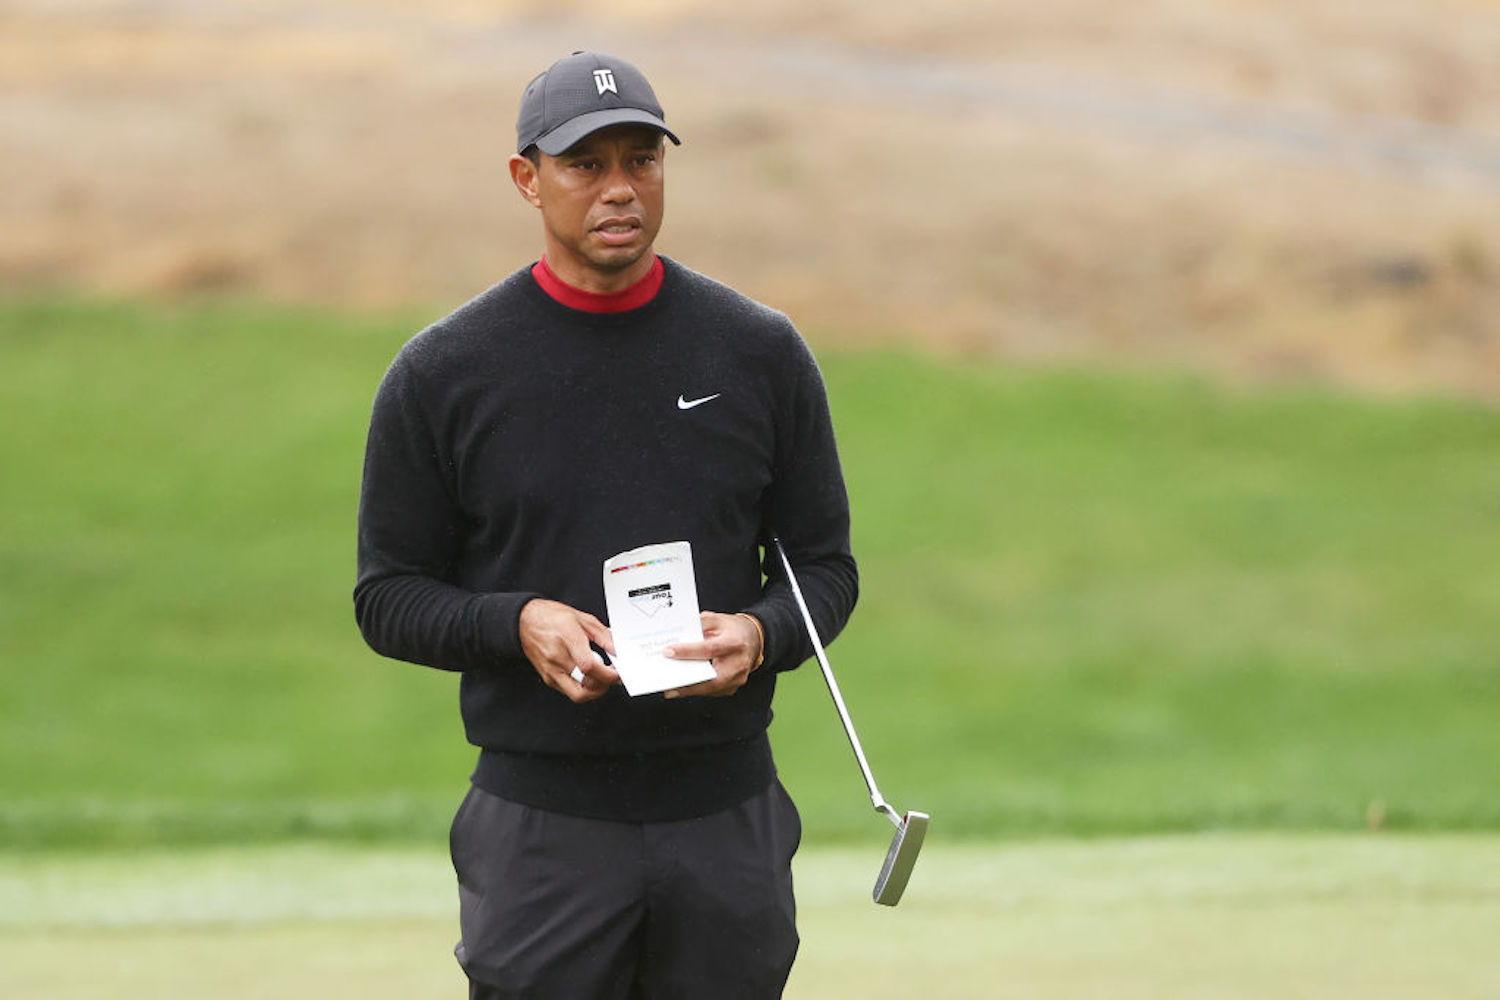 Tiger Woods isn't playing great golf right now, and now he won't have a chance to tweak his game before The Masters on Nov. 12.